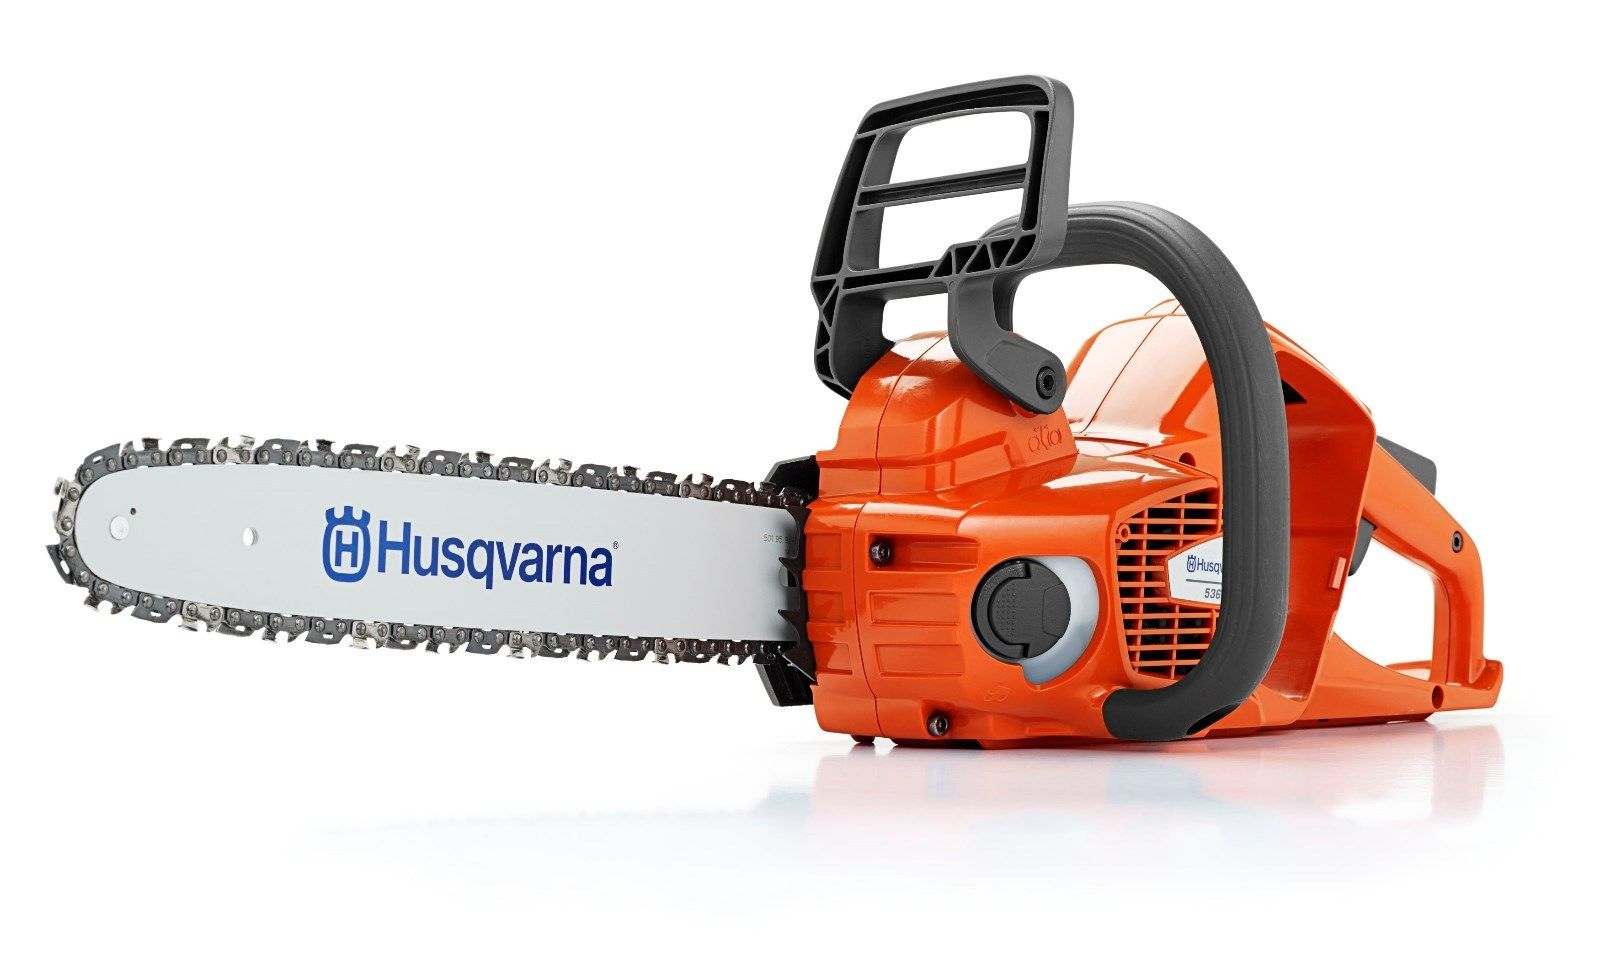 husqvarna 536 lixp 14 battery powered chainsaw. Black Bedroom Furniture Sets. Home Design Ideas